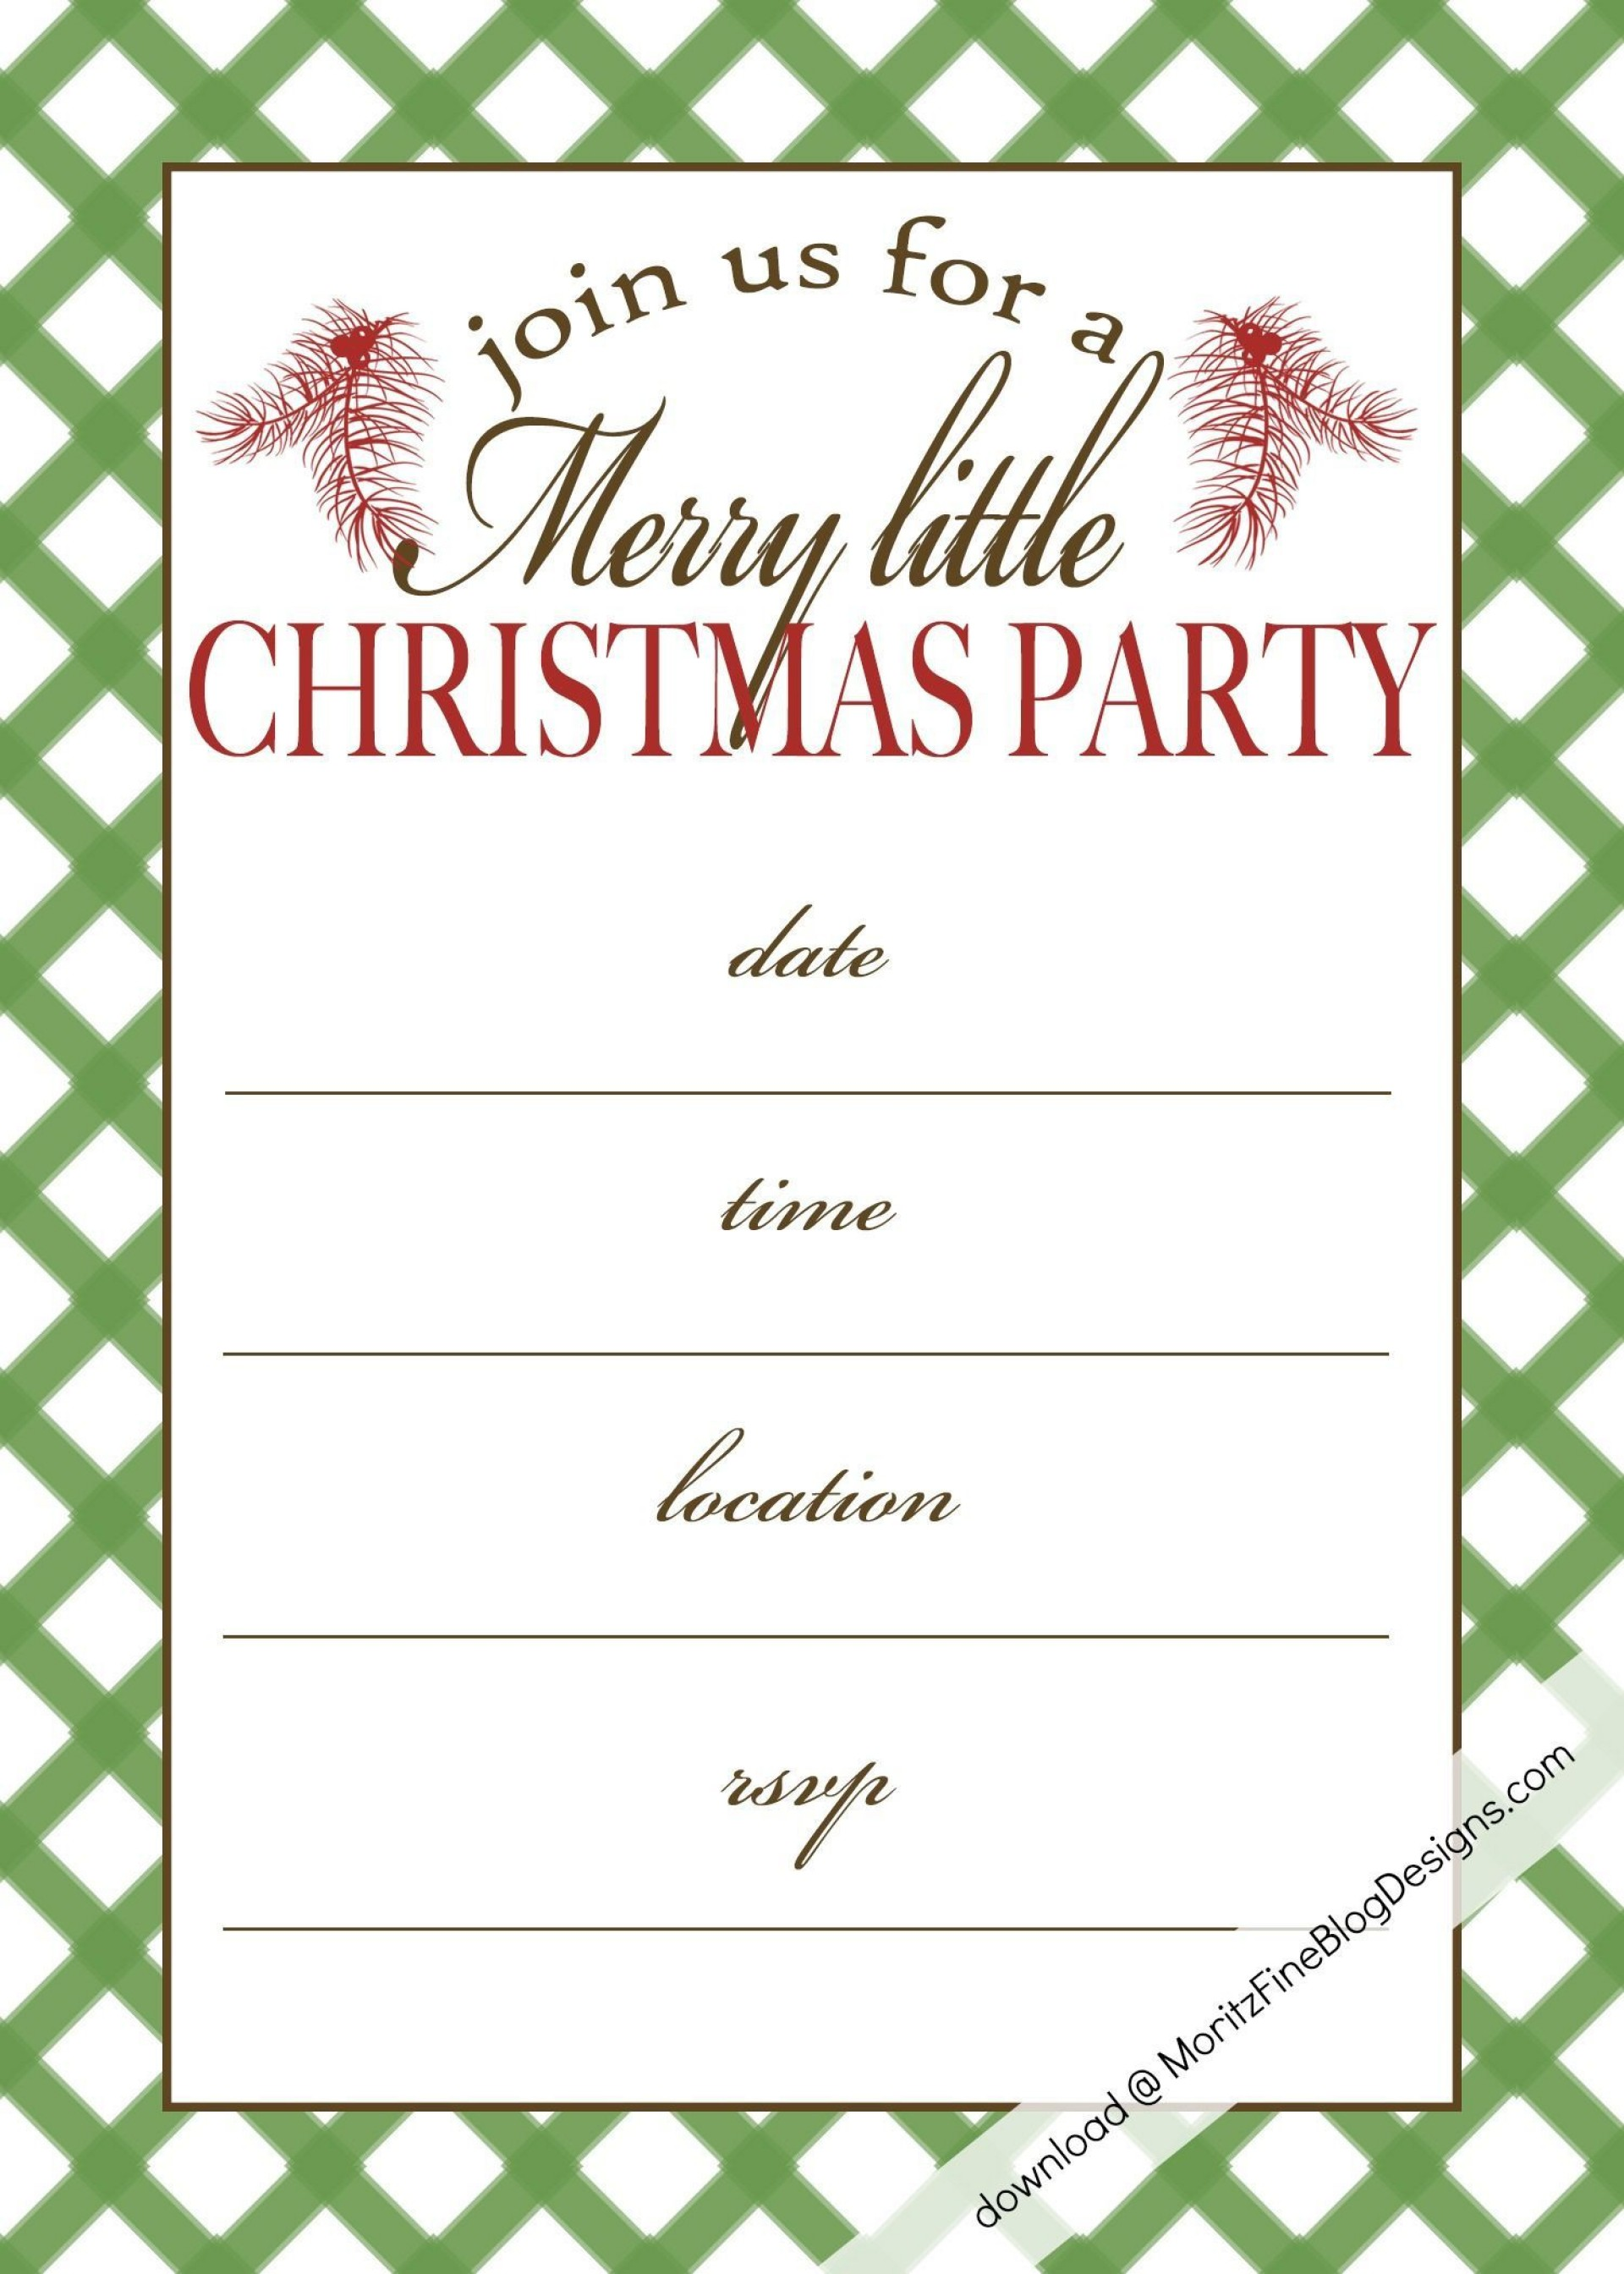 002 Frightening Holiday Party Invite Template Word Example  Cocktail Invitation Wording Sample Microsoft Christma1920